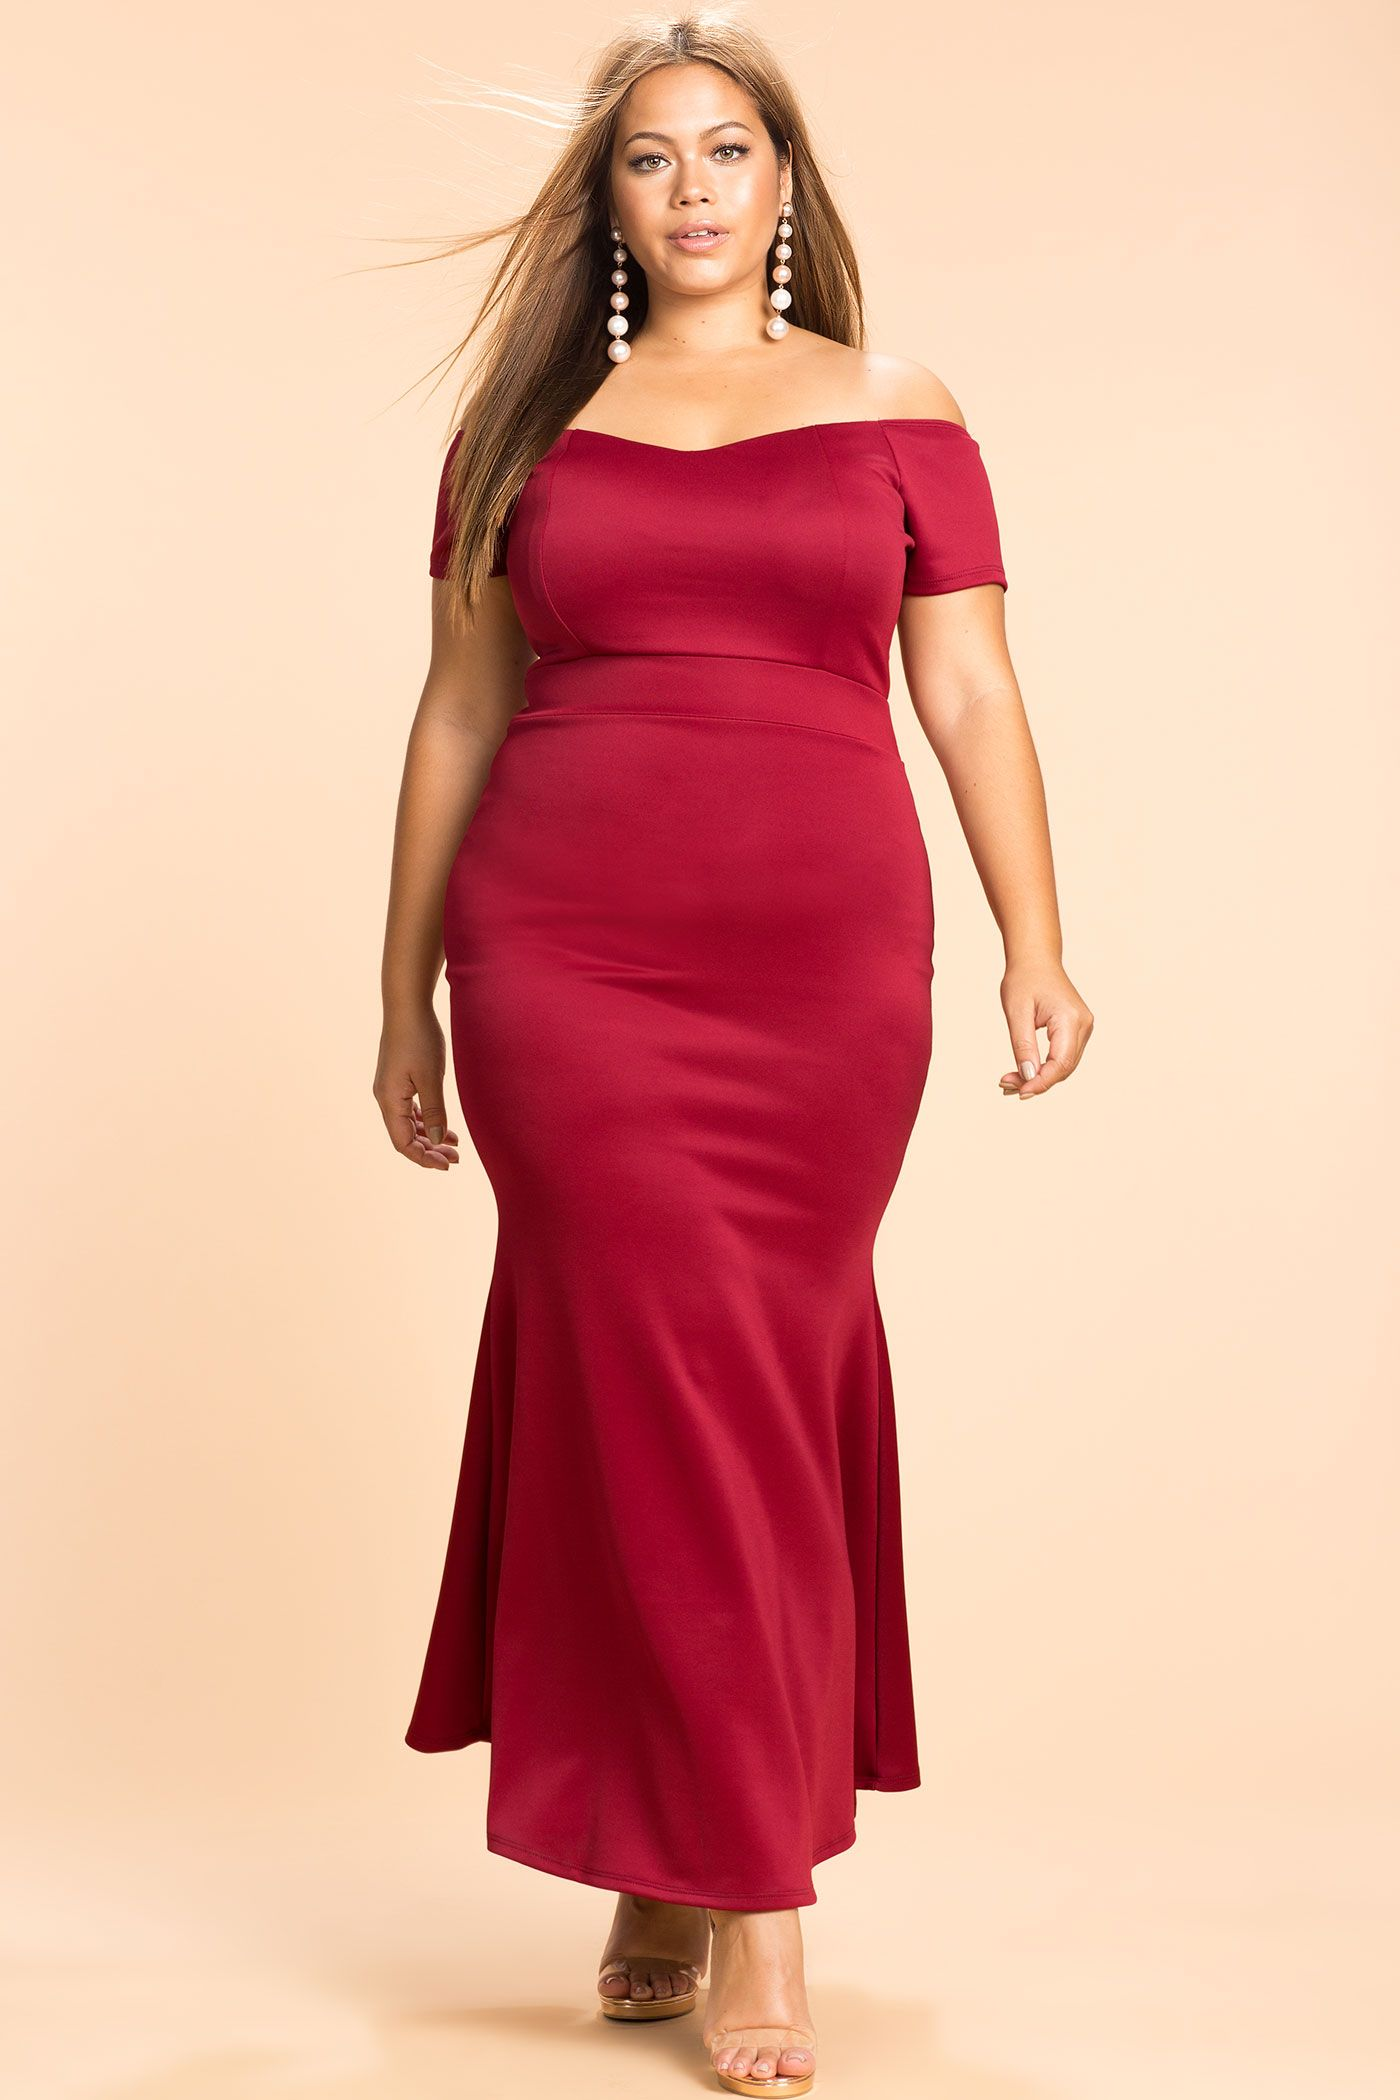 Plus-Size Formal Fall 2017  42a0878170